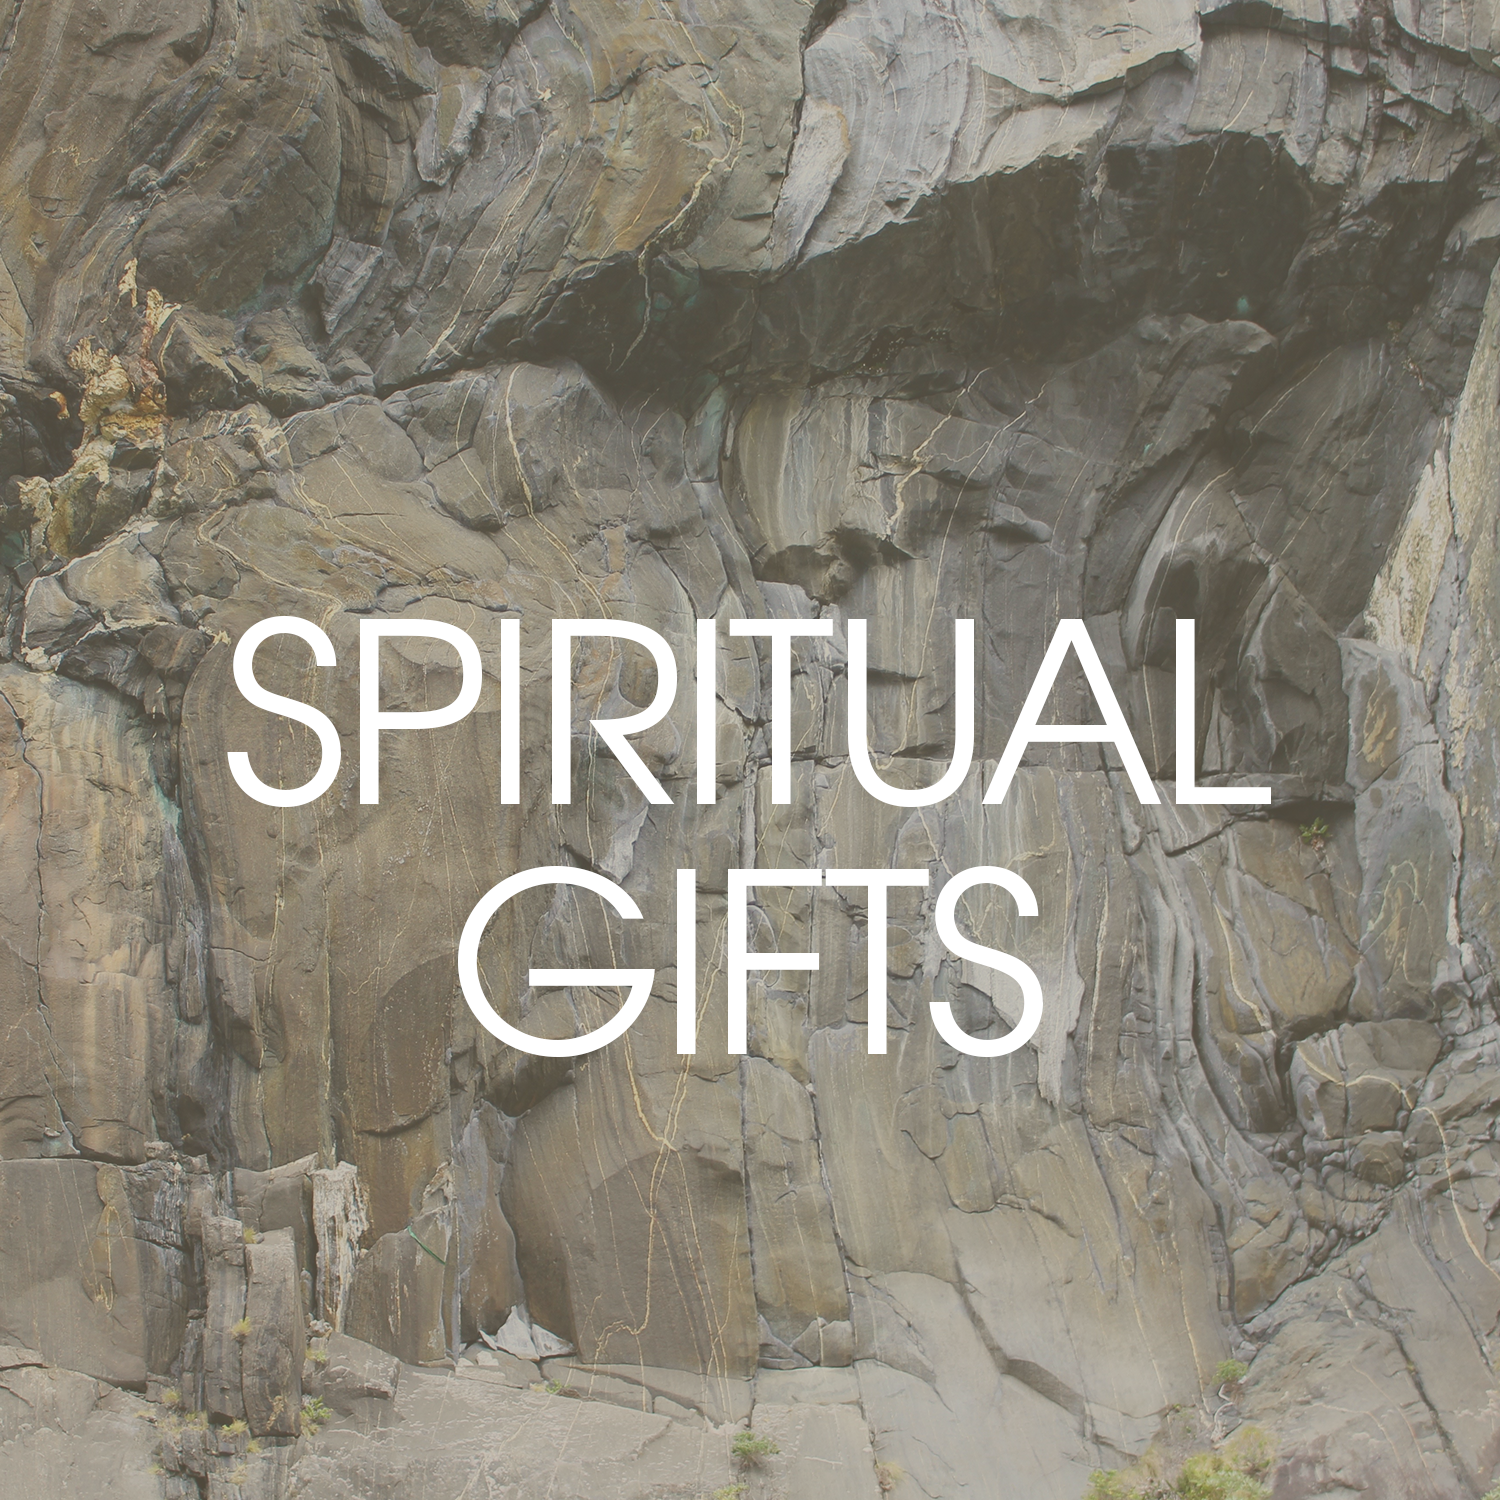 We believe spiritual gifts have been given to every believer and everyone should function in their gifts for the building up of the Body of Christ.